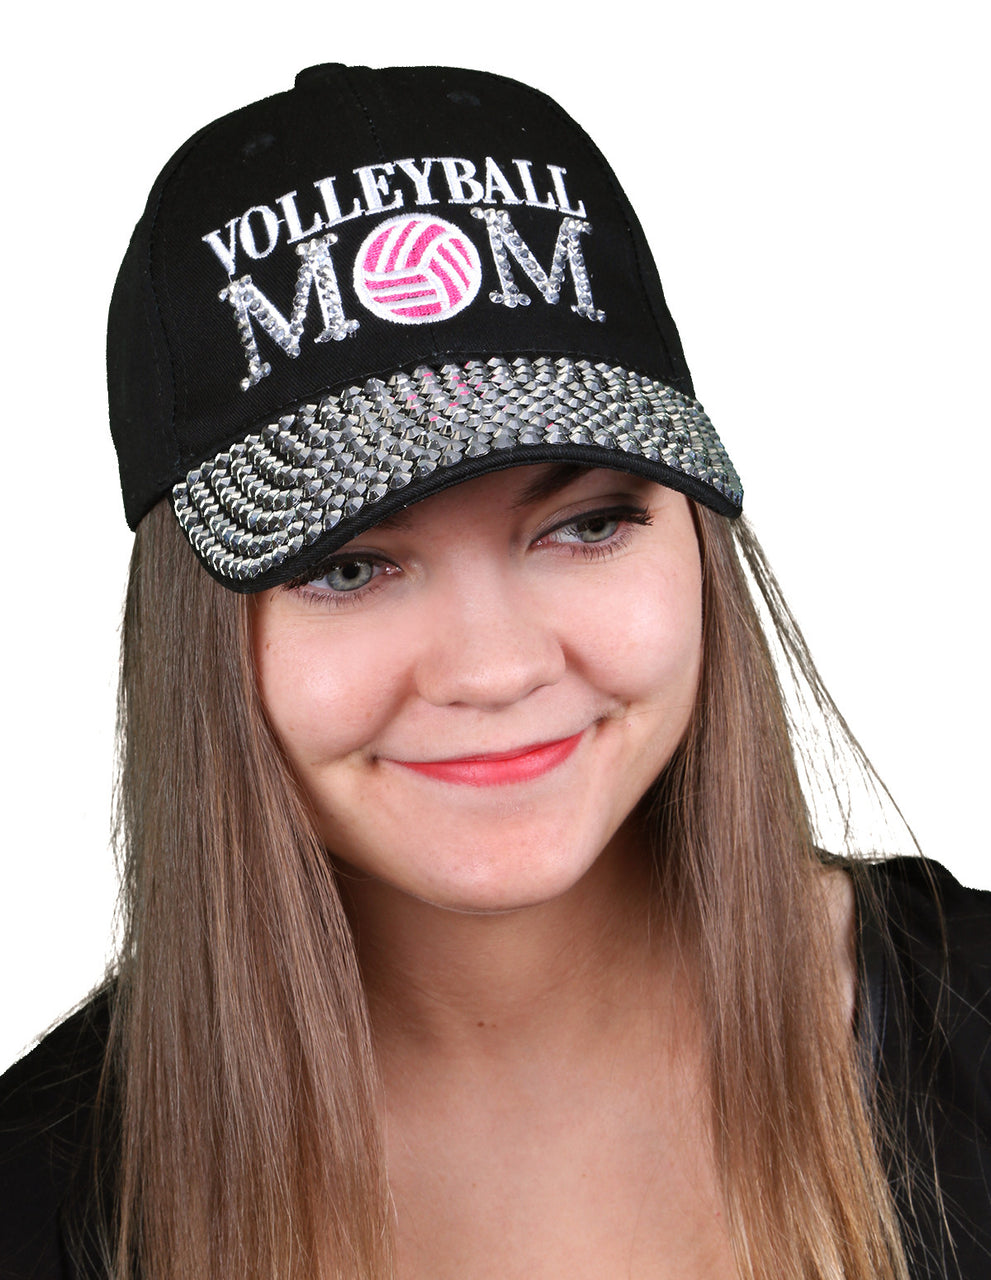 Funky Junque's Women's Silver Rhinestone Bill Sports Mom Bling Baseball Cap Hat - Volleyball Black